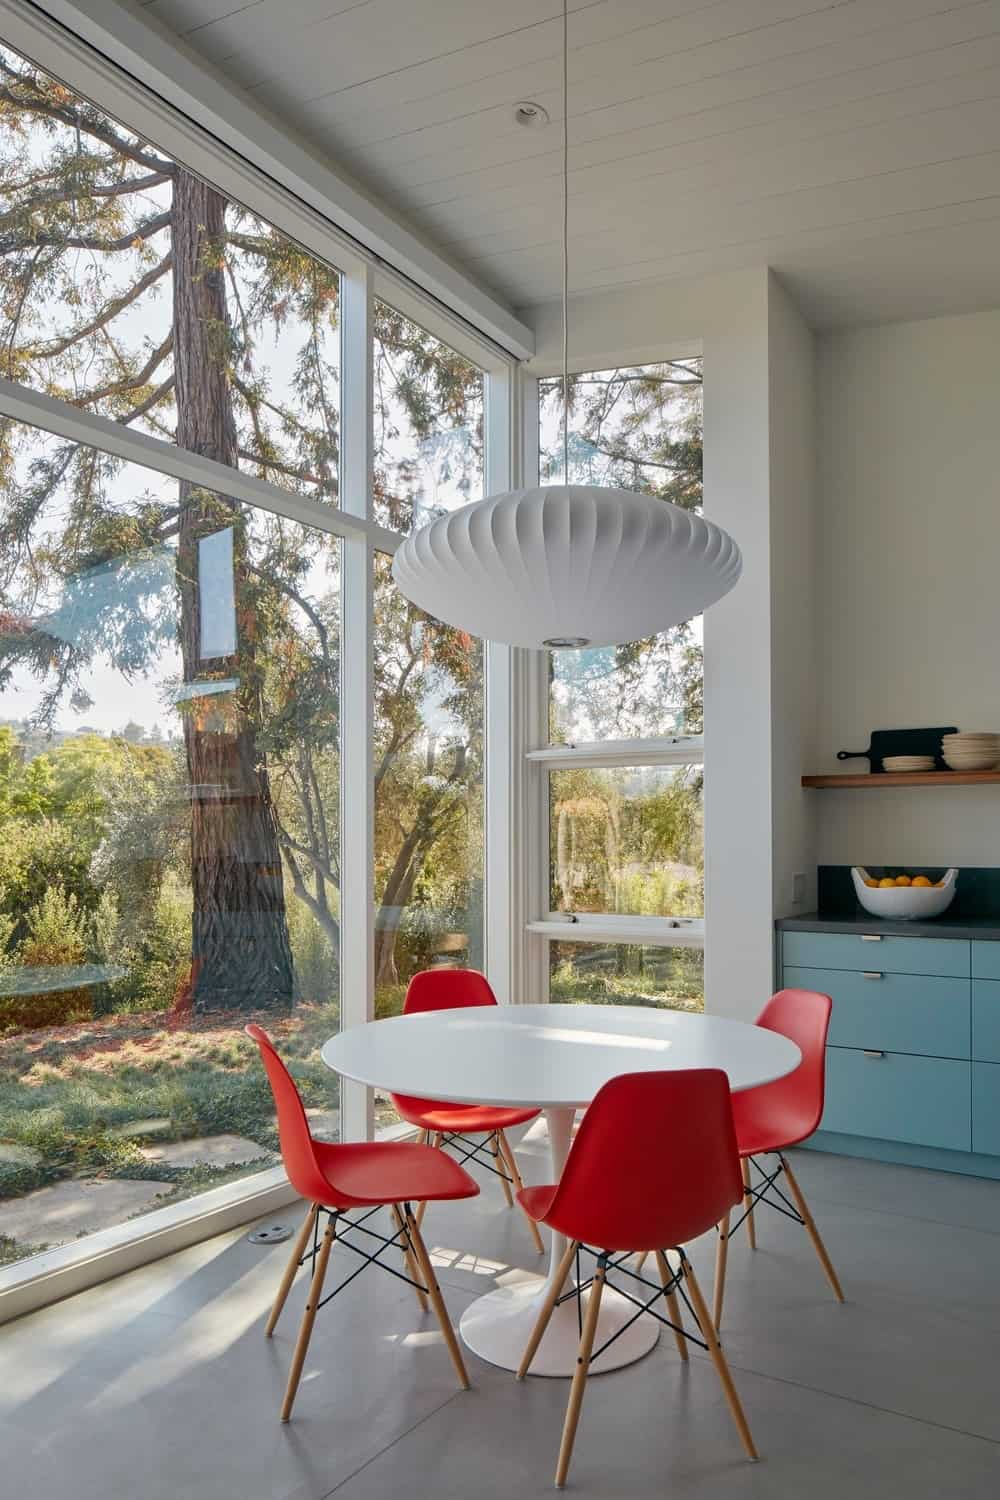 Breakfast nook in the Modern-Day California Ranch House designed by Malcolm Davis Architecture.